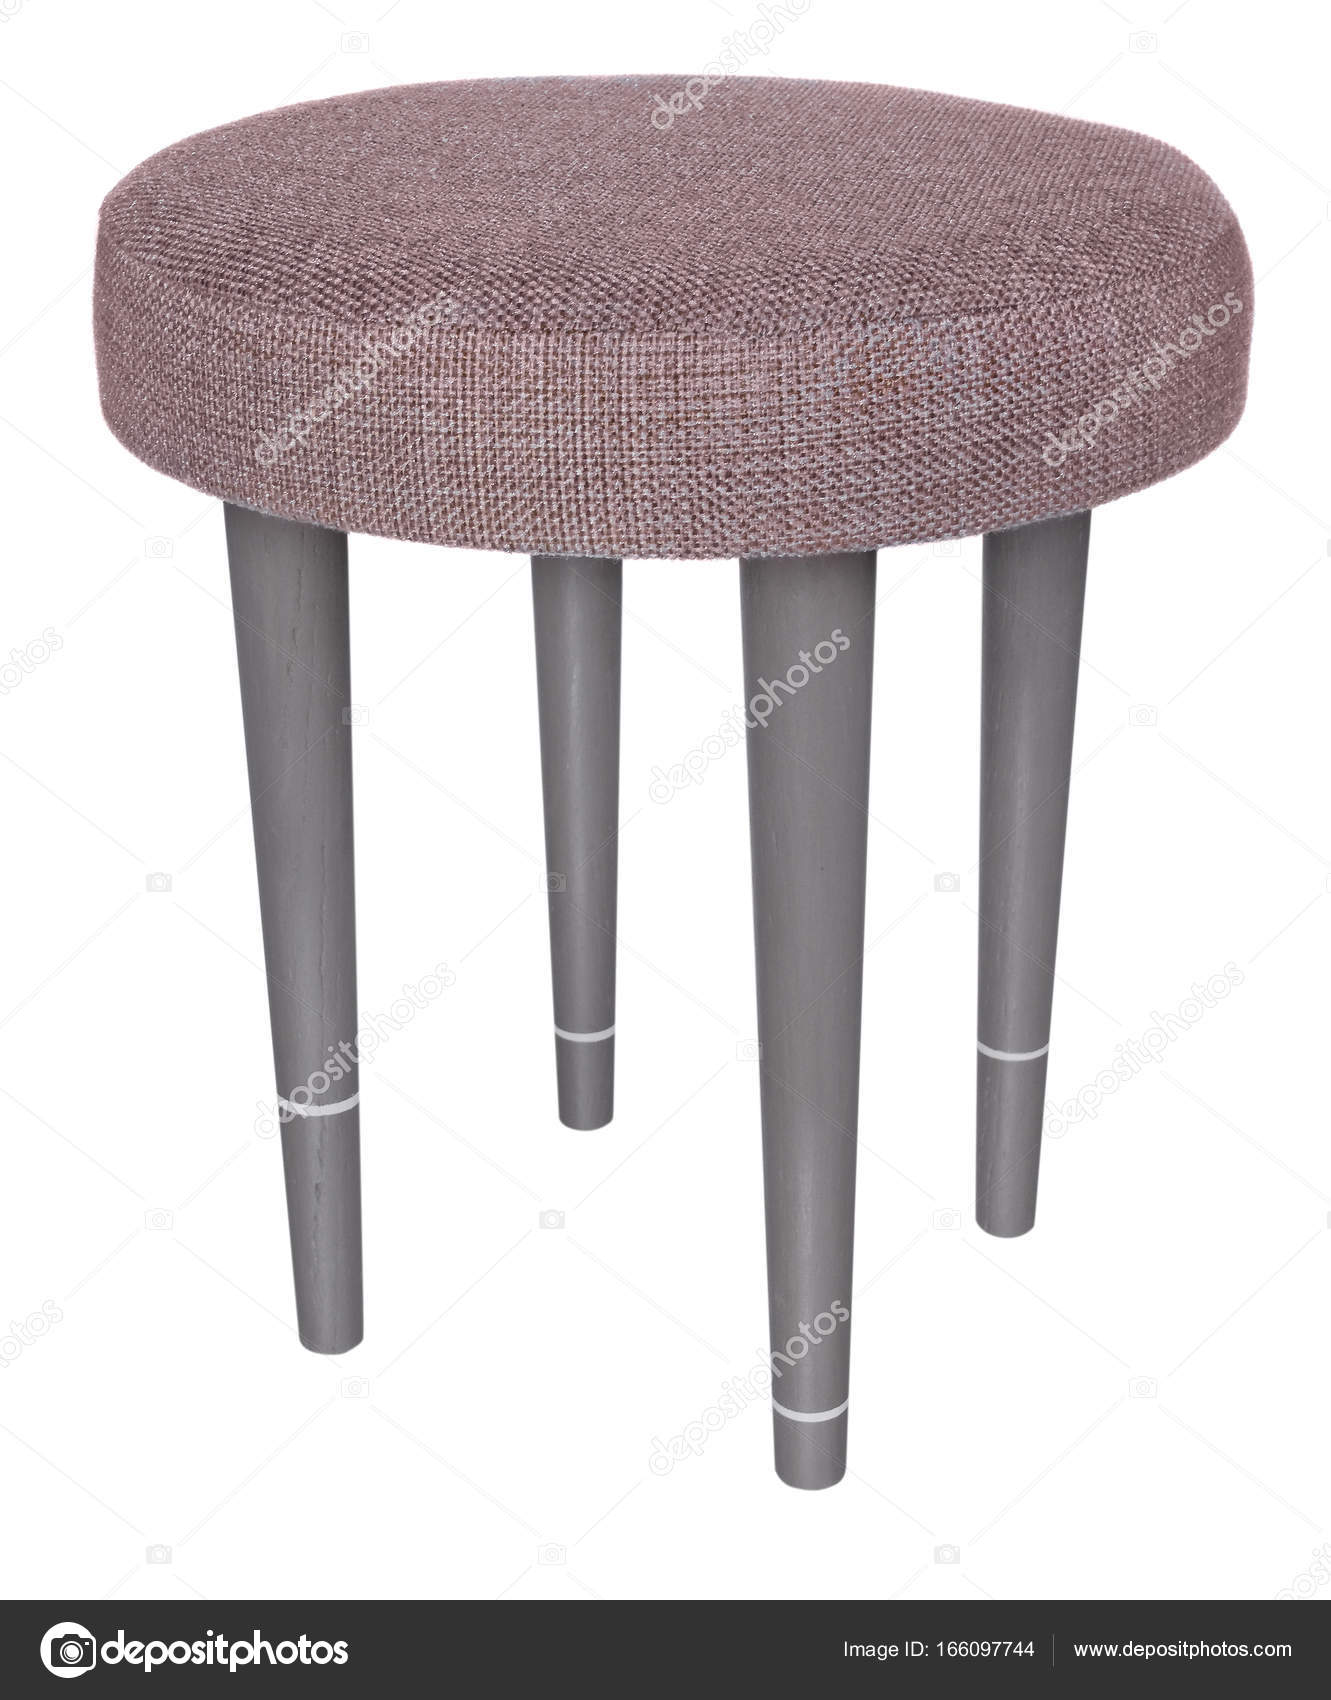 Enjoyable Handmade Stool Gray With White Stripes Round Seat In Grey Pdpeps Interior Chair Design Pdpepsorg